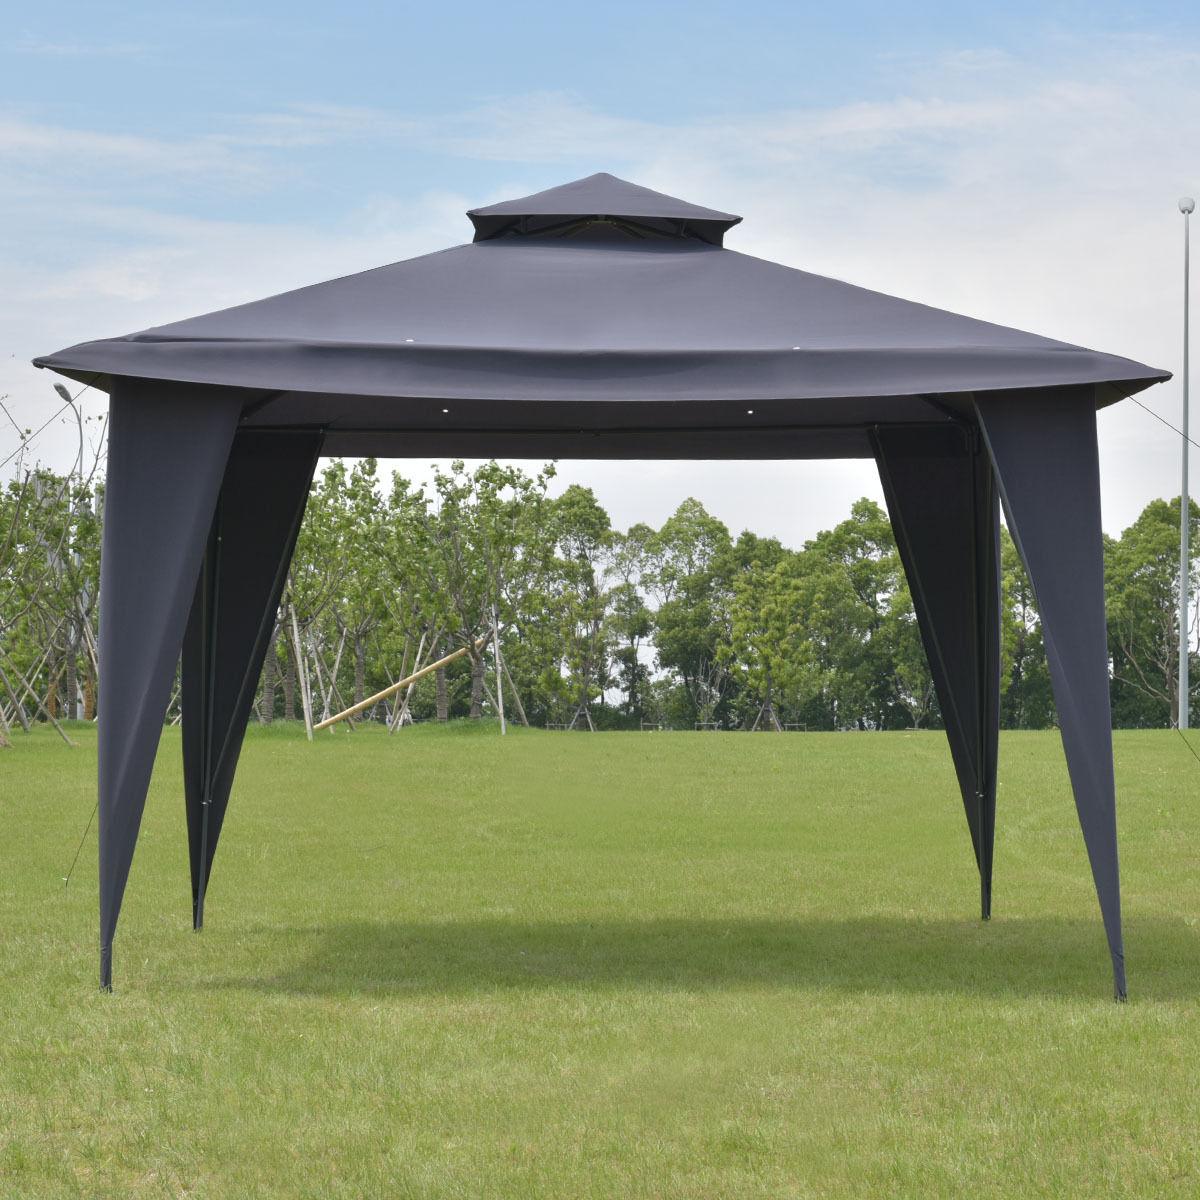 2  Tier 11 U0027X 11 Black U0027Gazebo Canopy Shelter Portable Tent Steel Frame